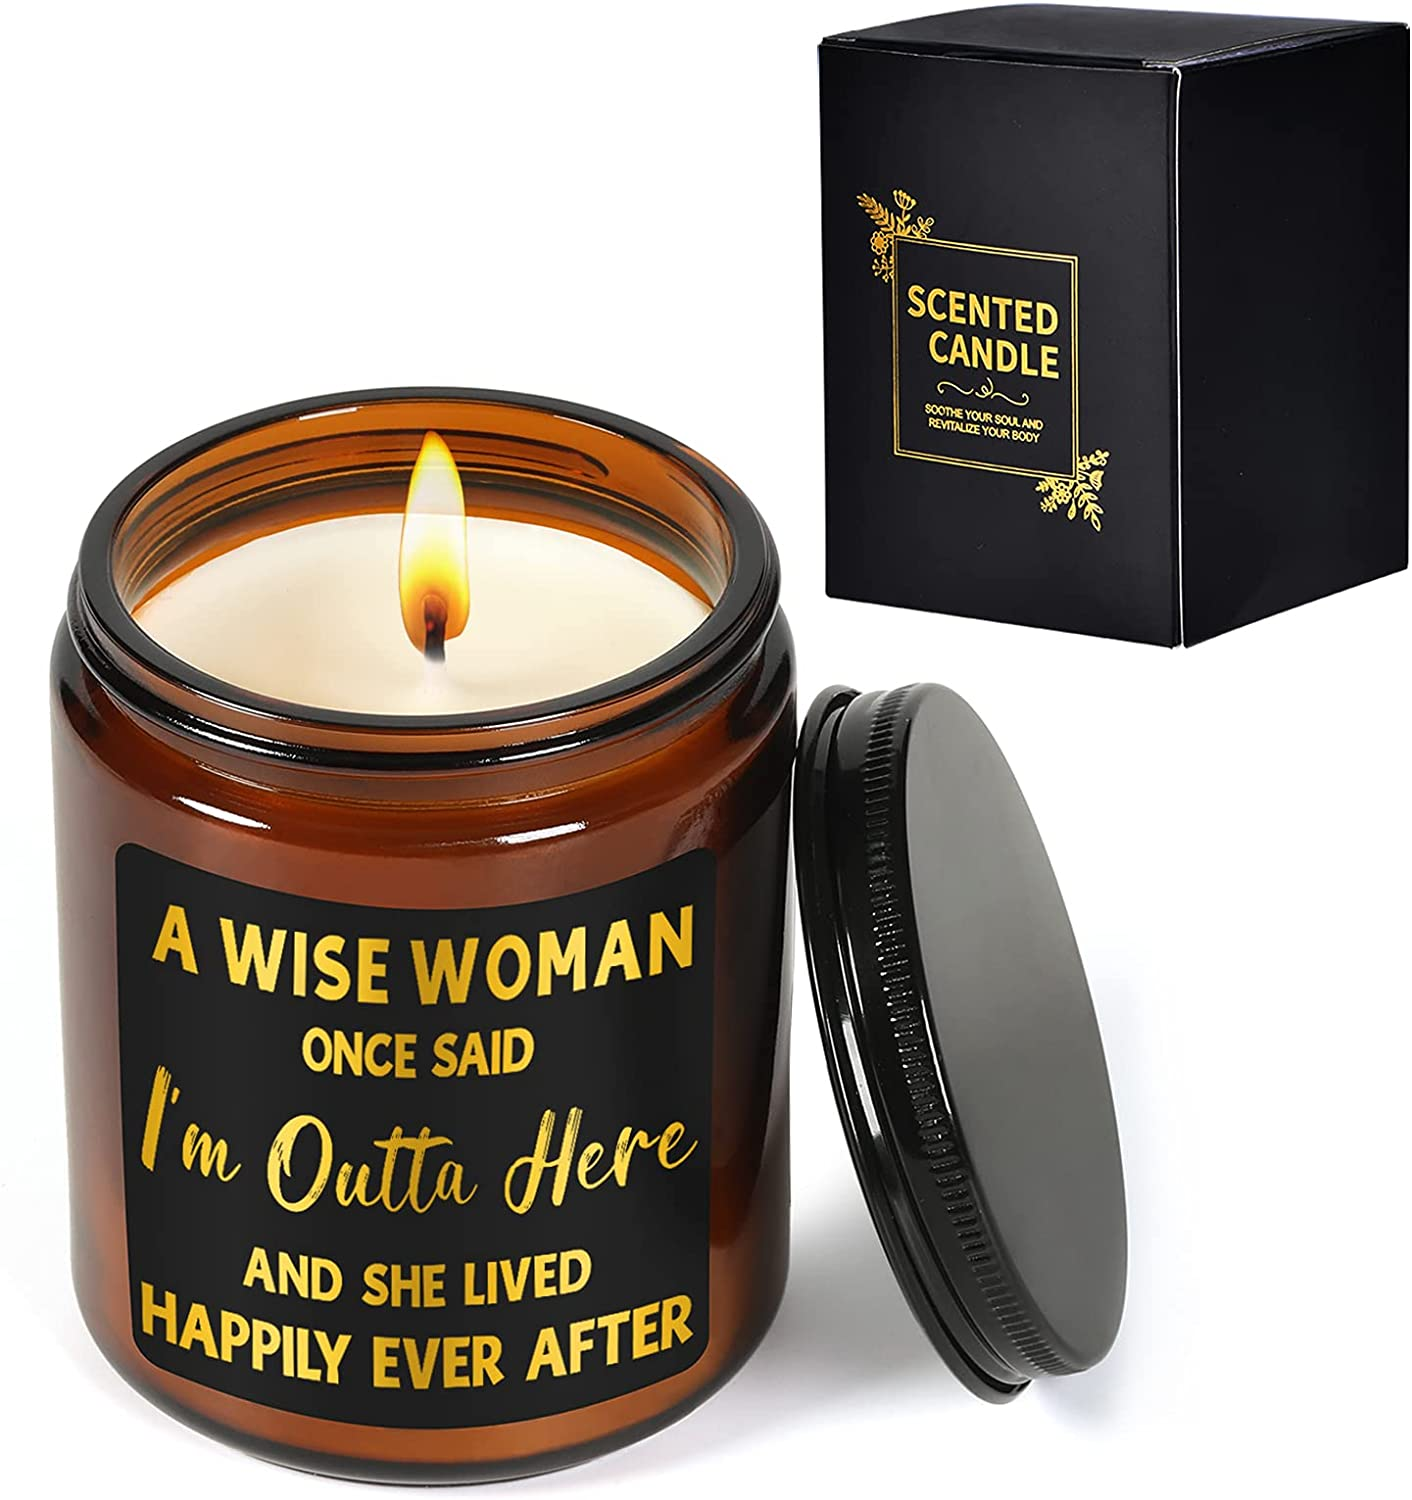 Retirement Gifts for Women 2021 - Female Retirement Gifts - Retired Gifts for Women - Coworker Leaving Gifts, Farewell Gifts, Goodbye Gift for Women, Coworkers, Friends - Lavender Scented Candles